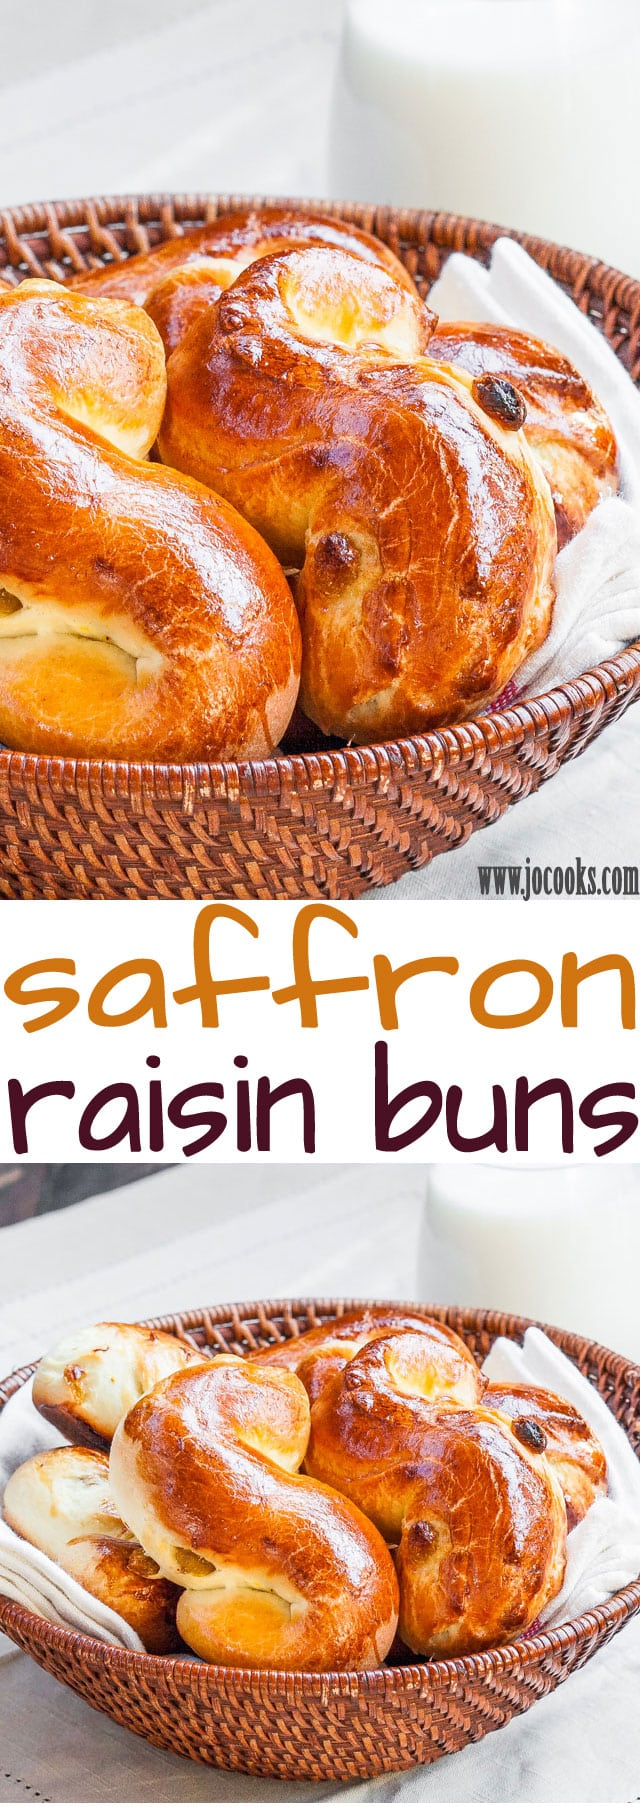 saffron-raisin-buns-collage